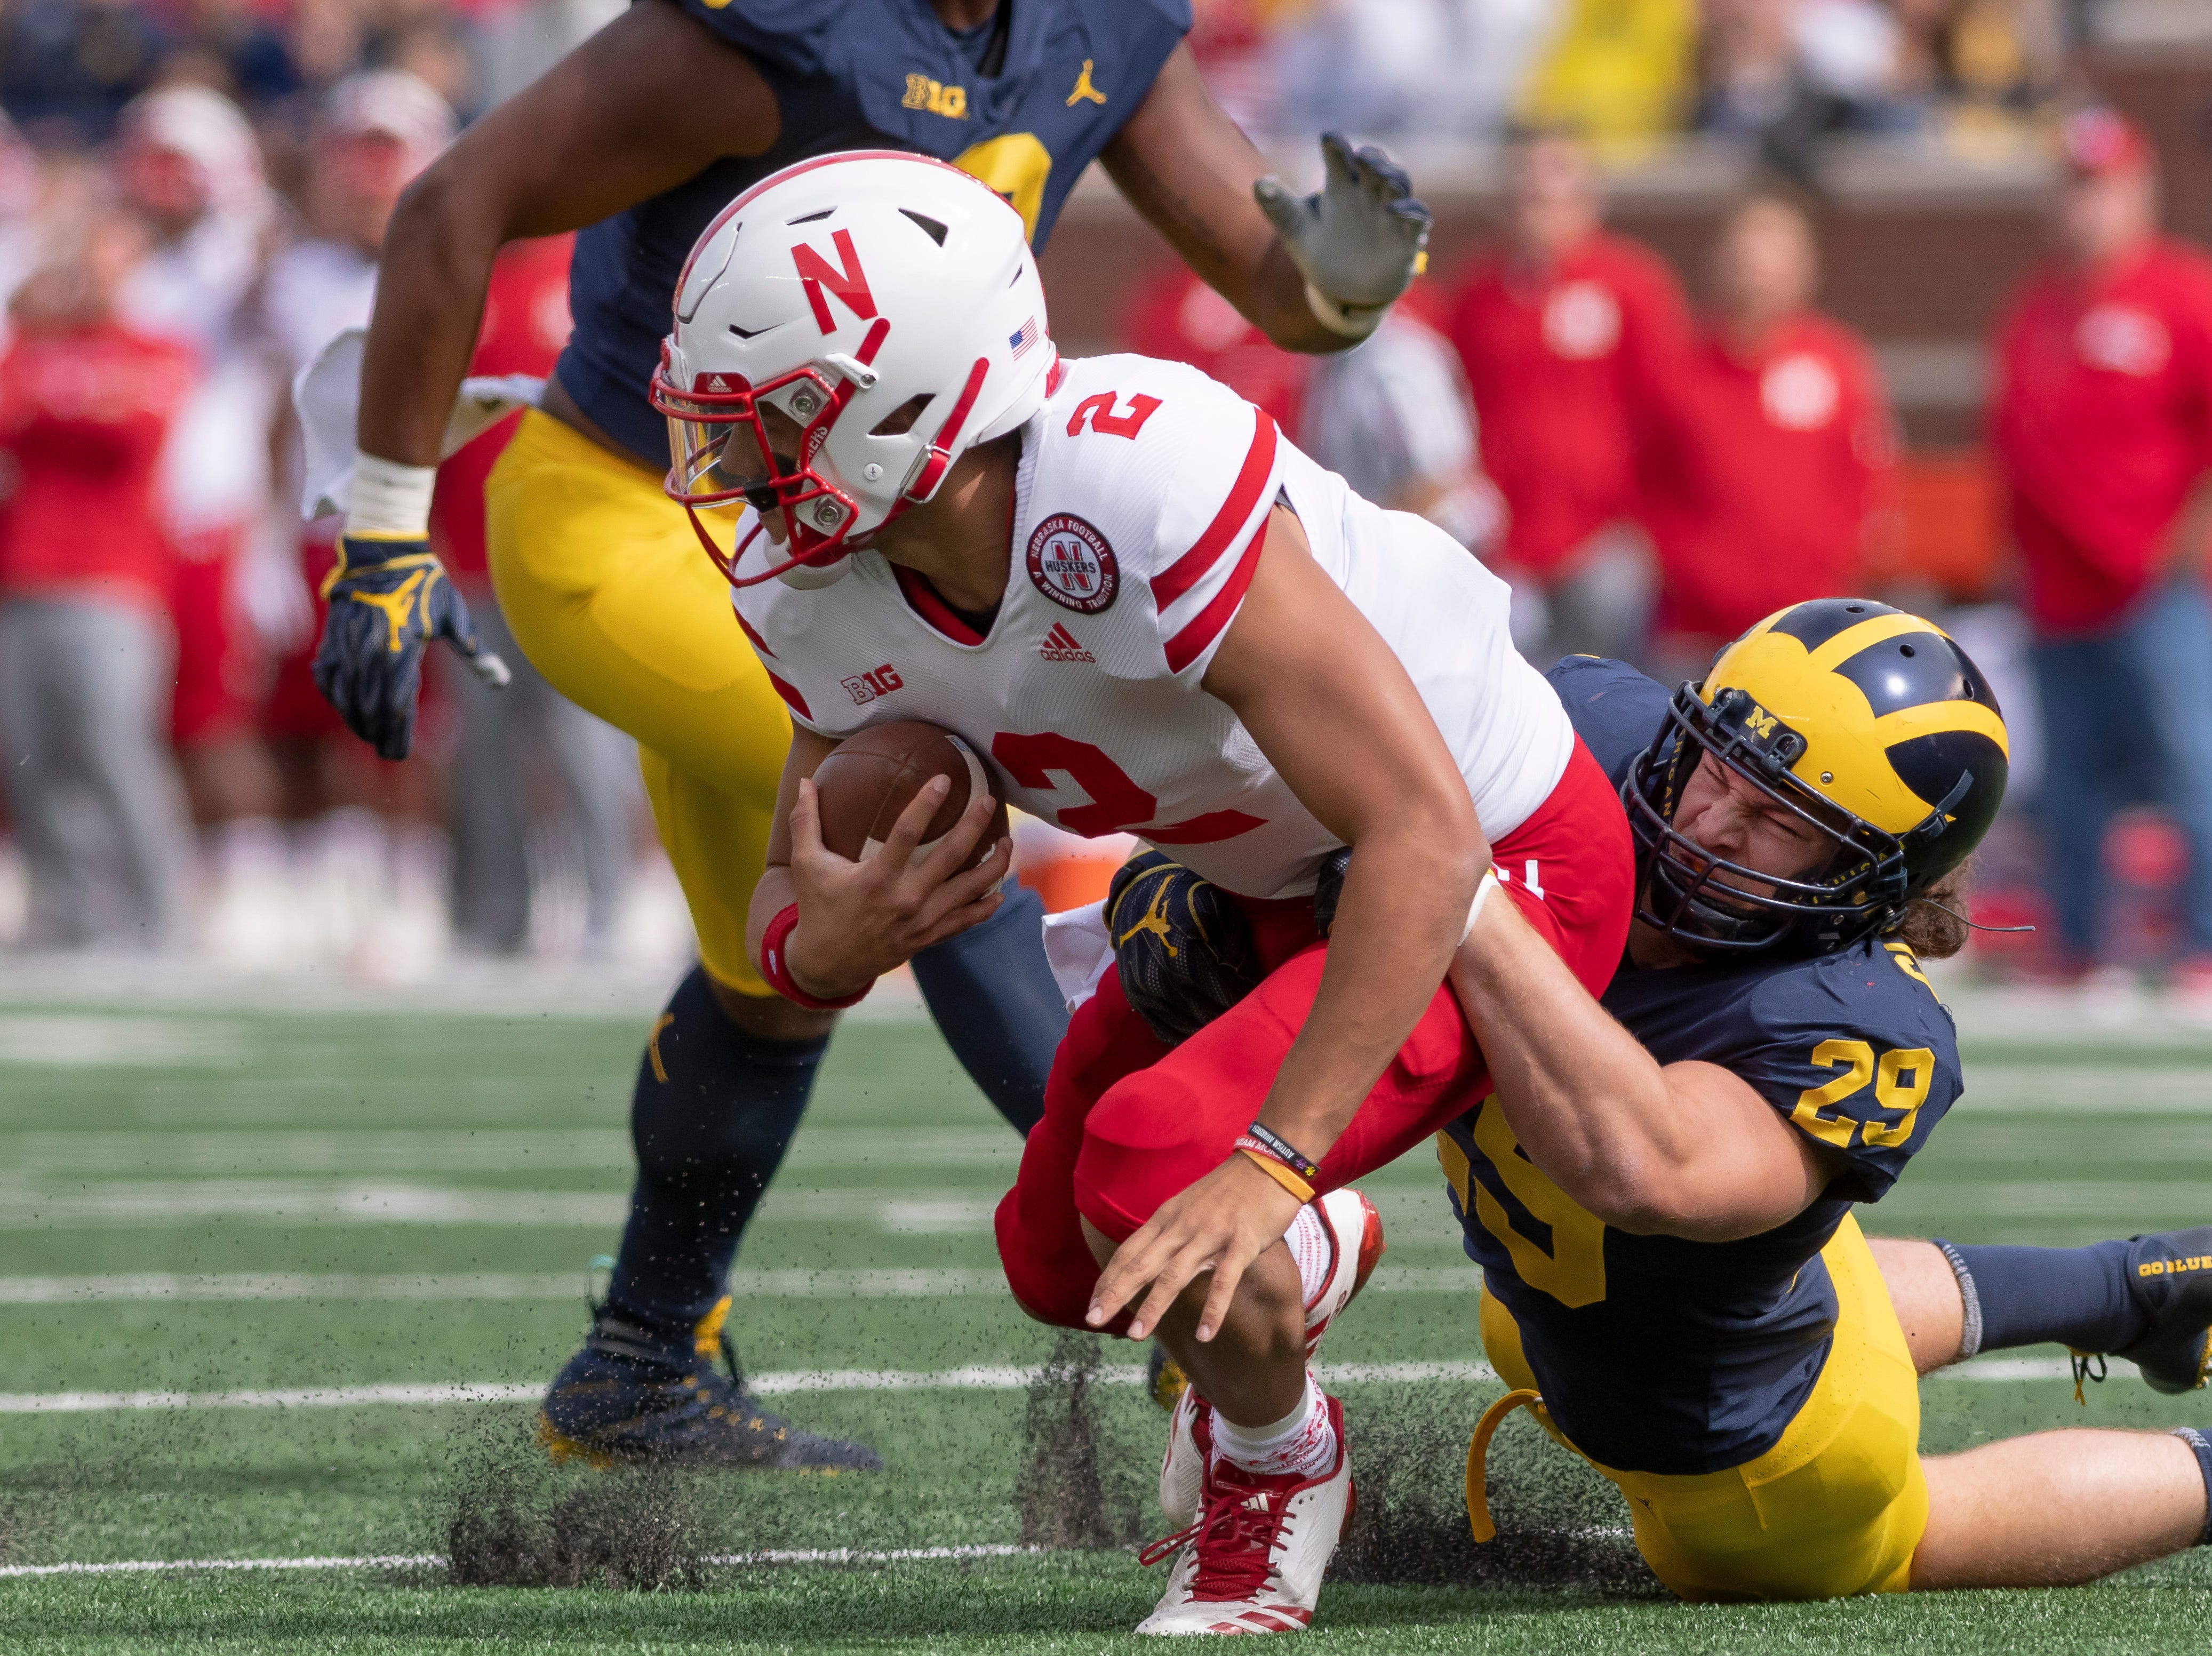 Nebraska quarterback Adrian Martinez is tackled by Michigan linebacker Jordan Glasgow in the first quarter.